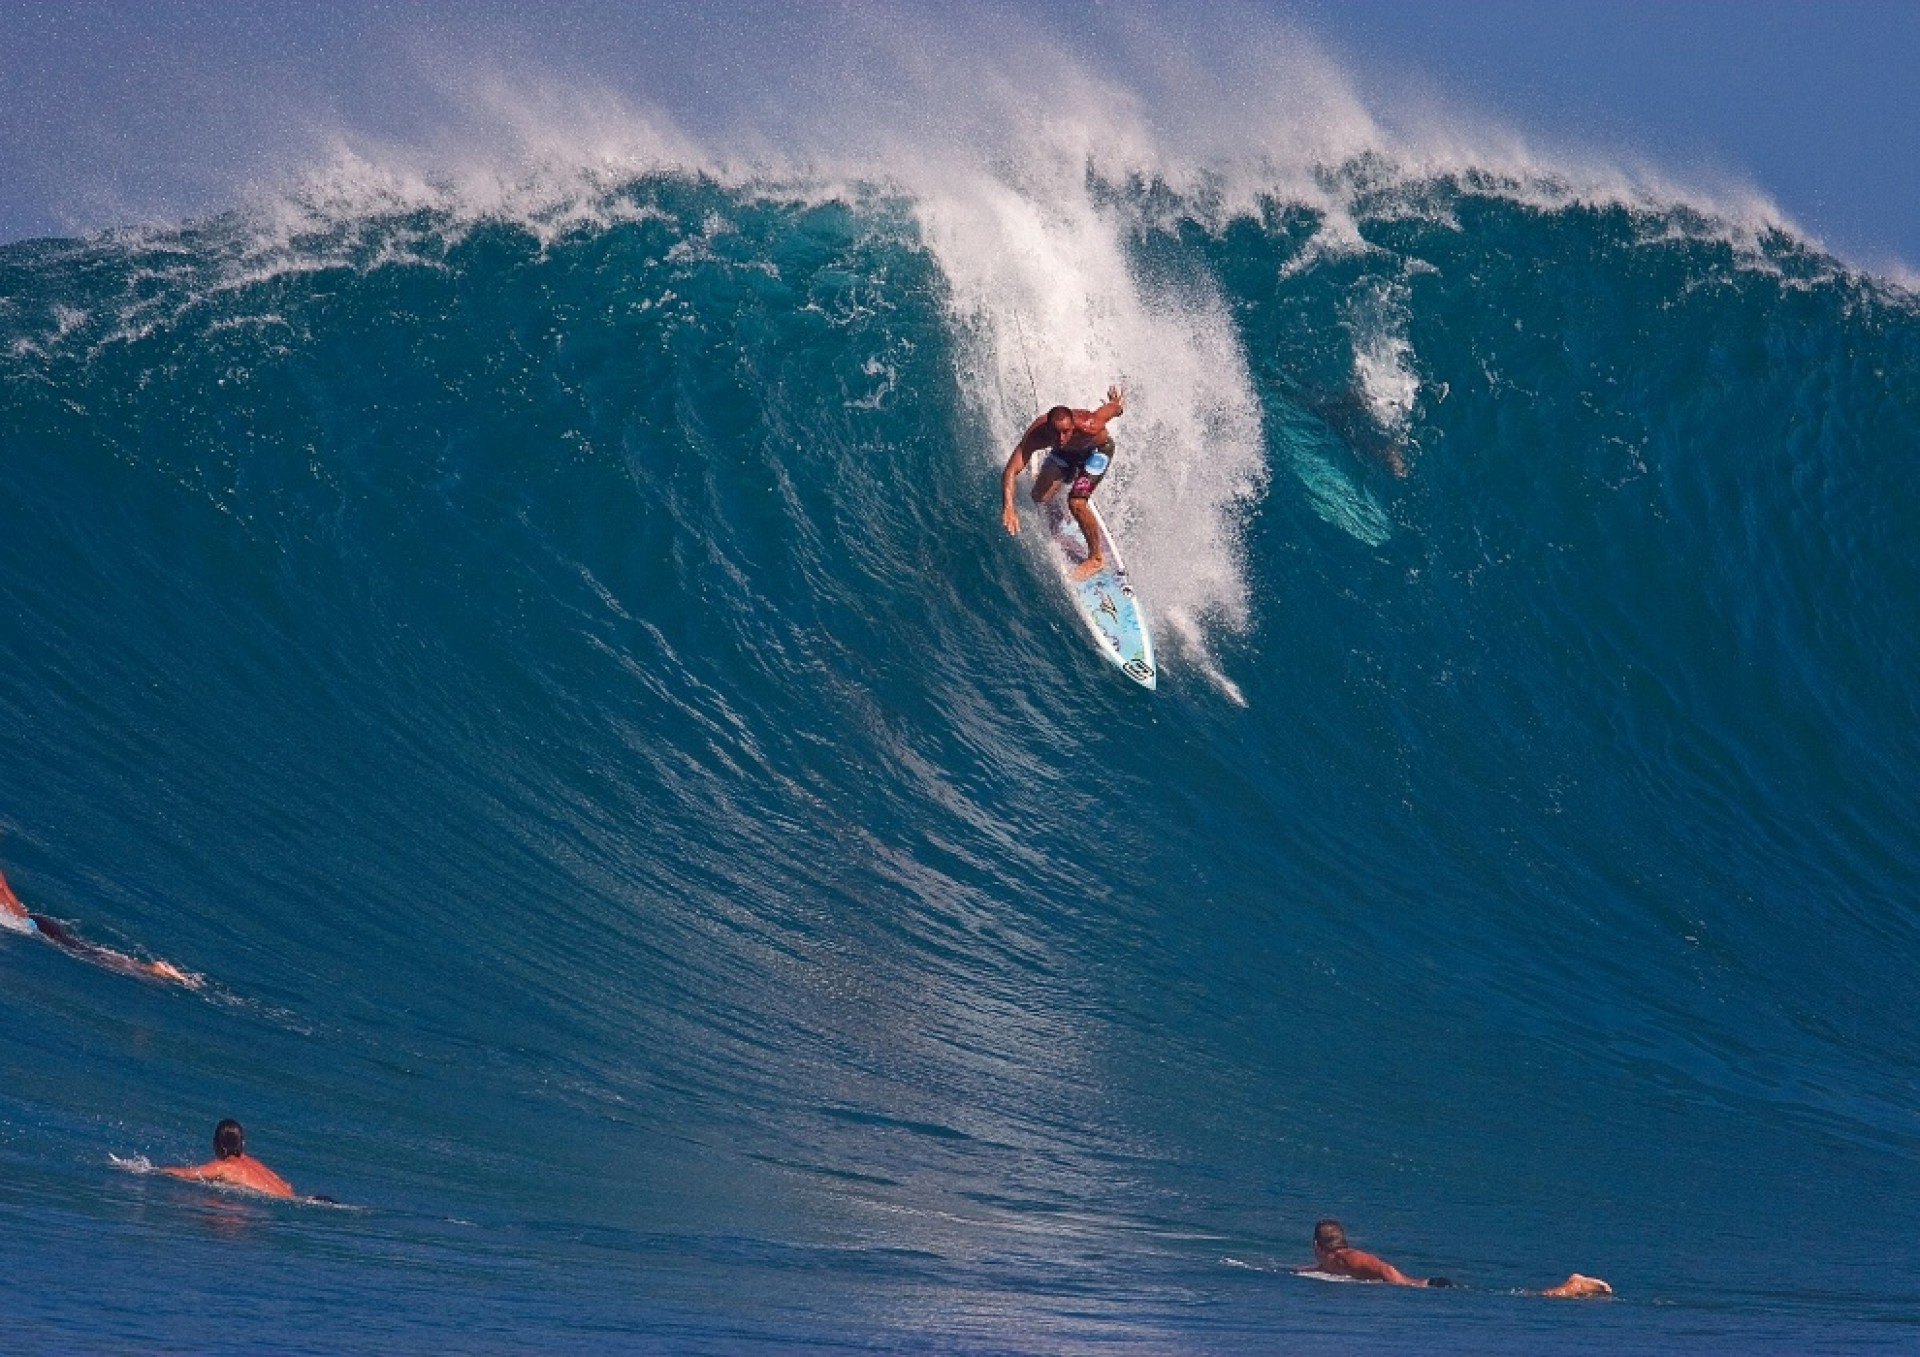 Sharpy's photo of Pipeline & Backdoor